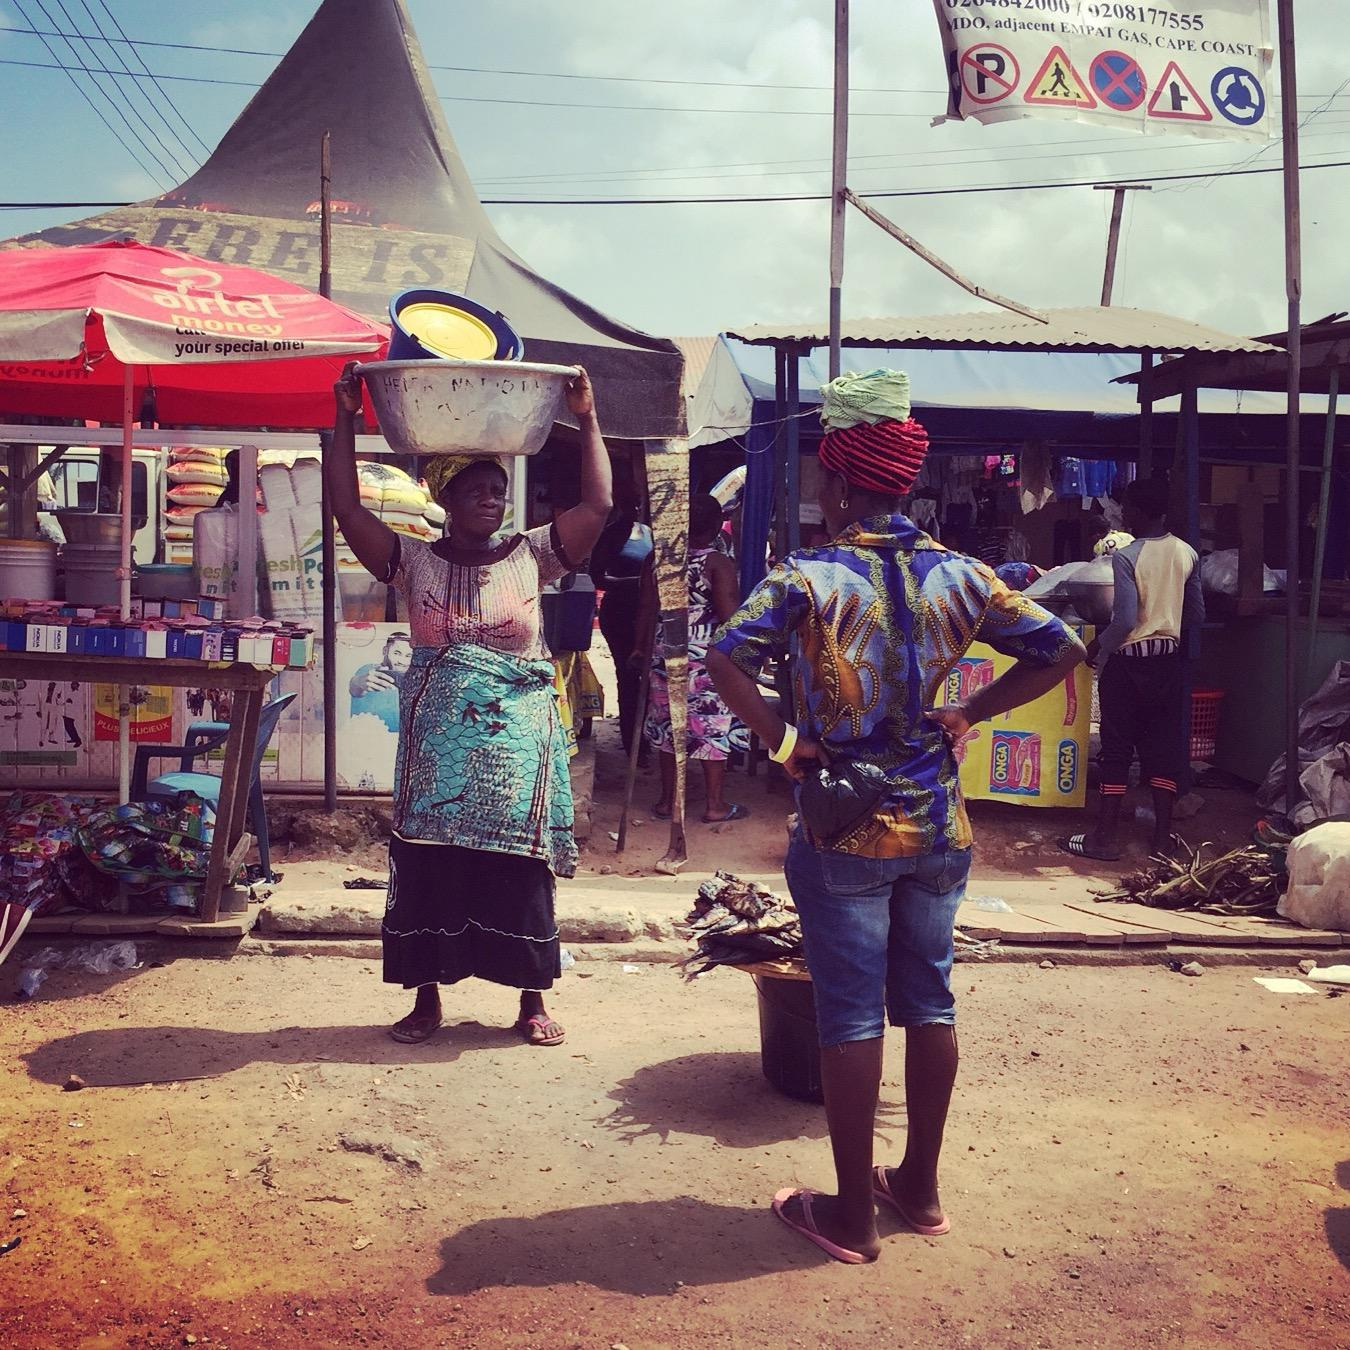 A typical, colorful street scene in Cape Coast. Noah Strycker